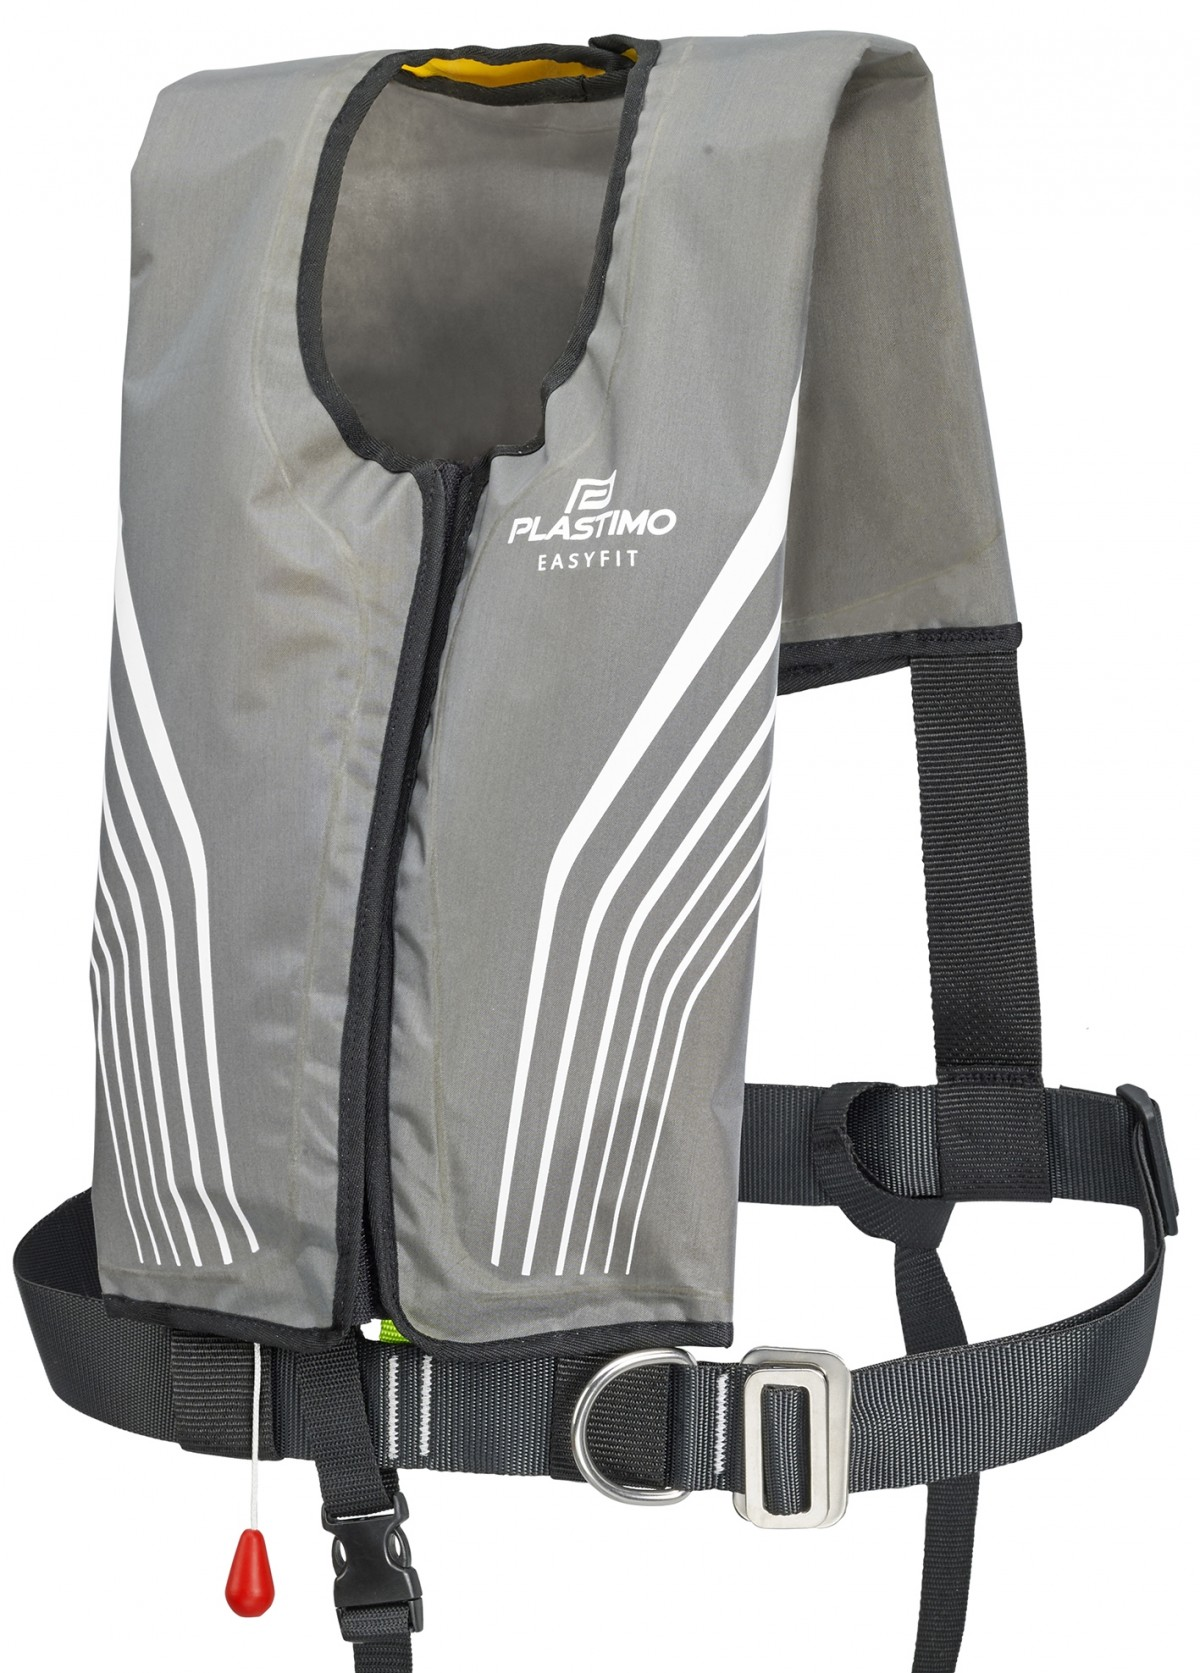 Easyfit lifejacket